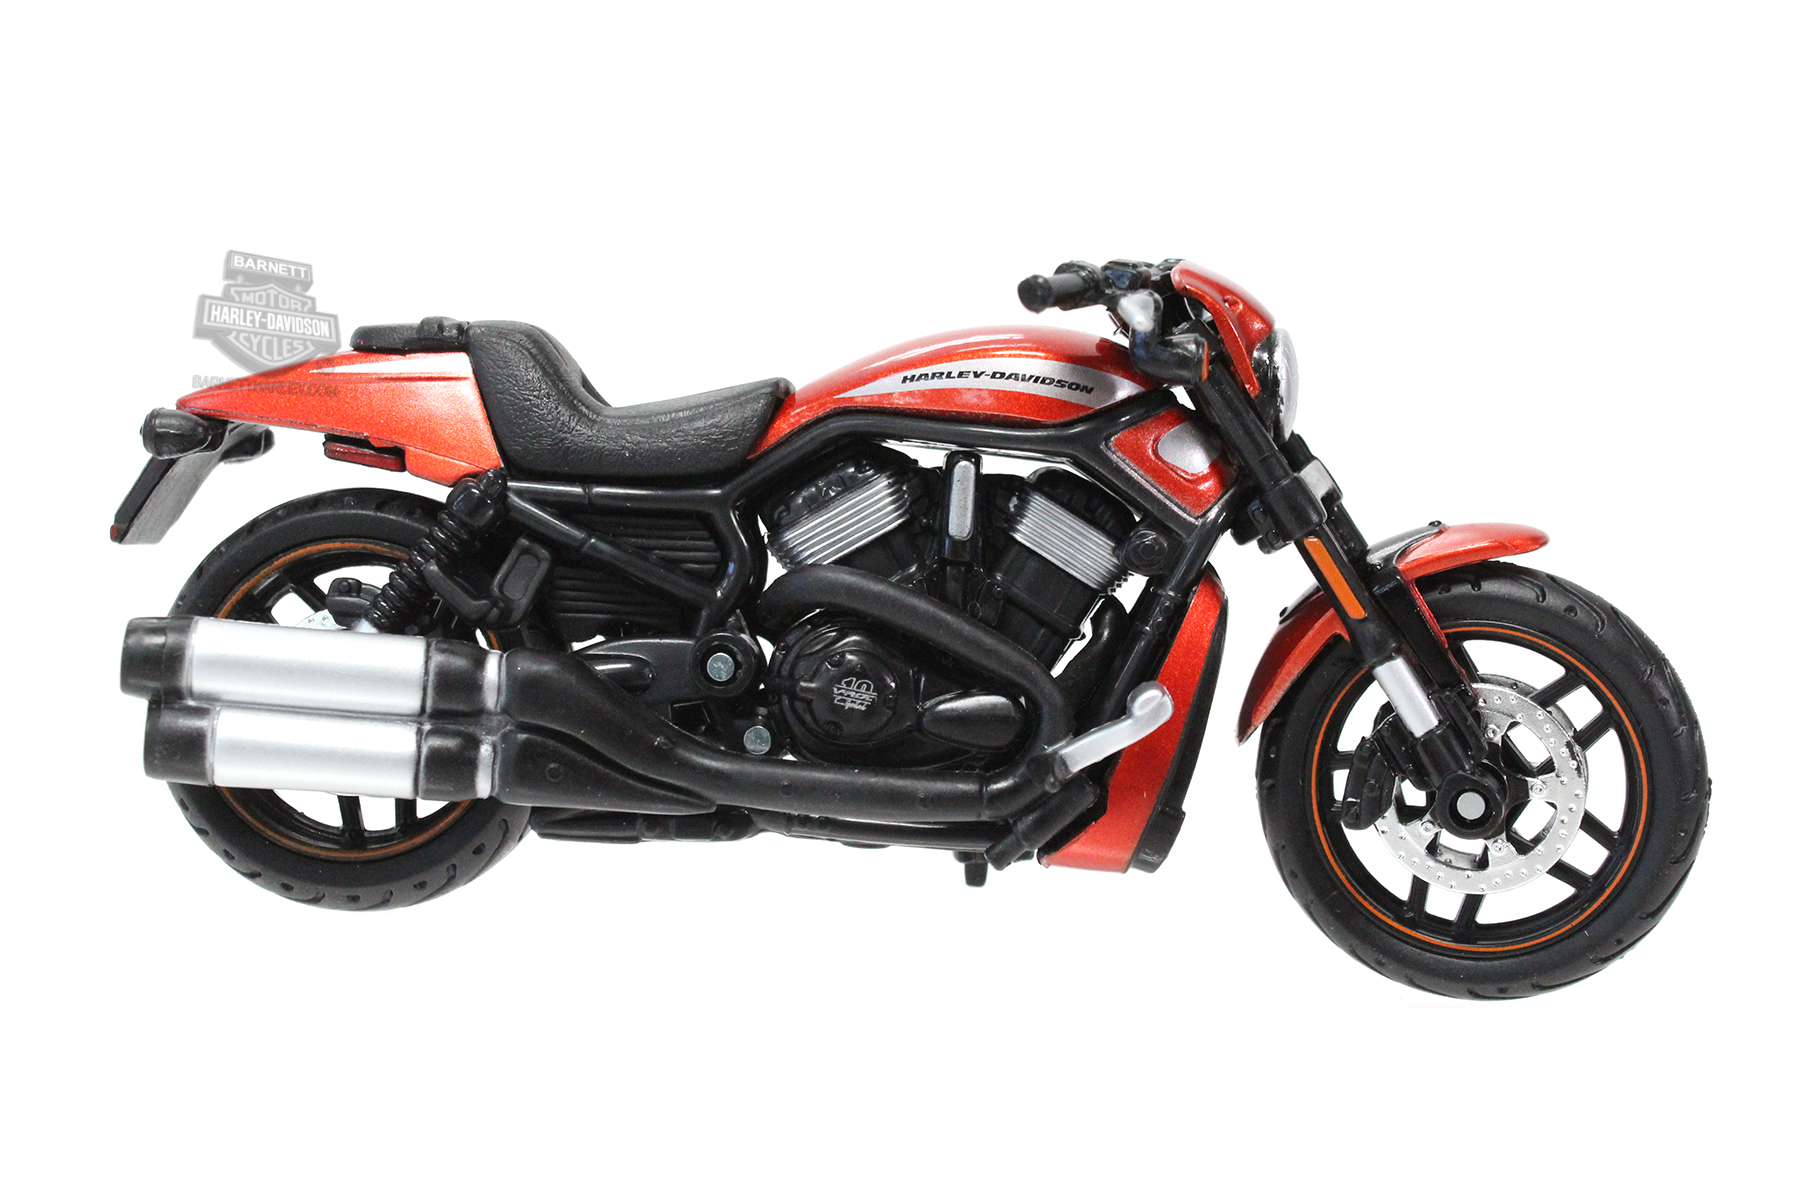 ma 31360ag 03 harley davidson 2012 vrscdx night rod special ser 33 orange model 1 18 scale. Black Bedroom Furniture Sets. Home Design Ideas